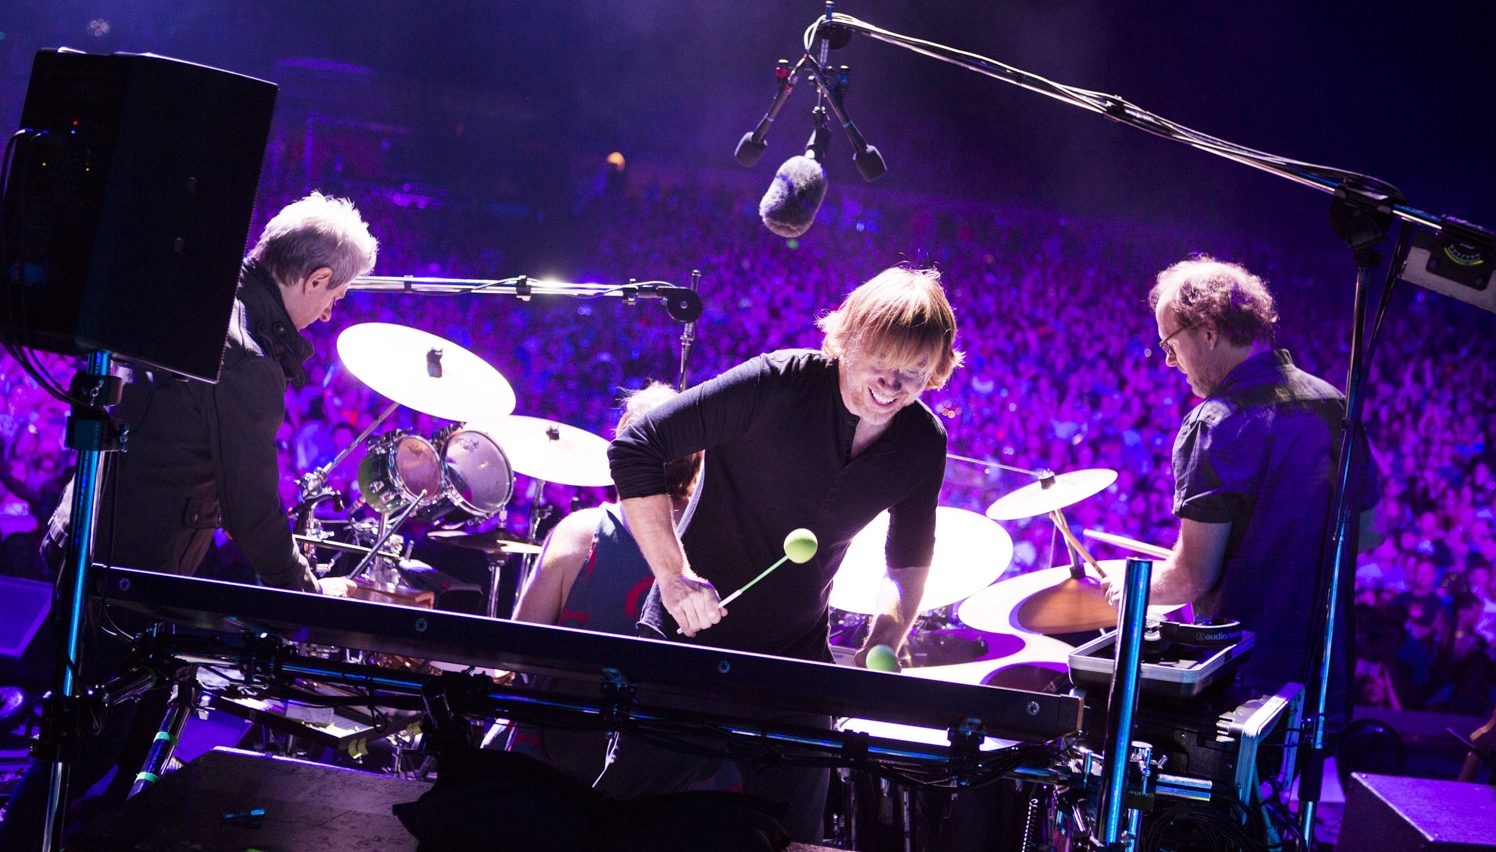 Phish, photographed during their summer 2016 tour. (Photo by Rene Huemer)